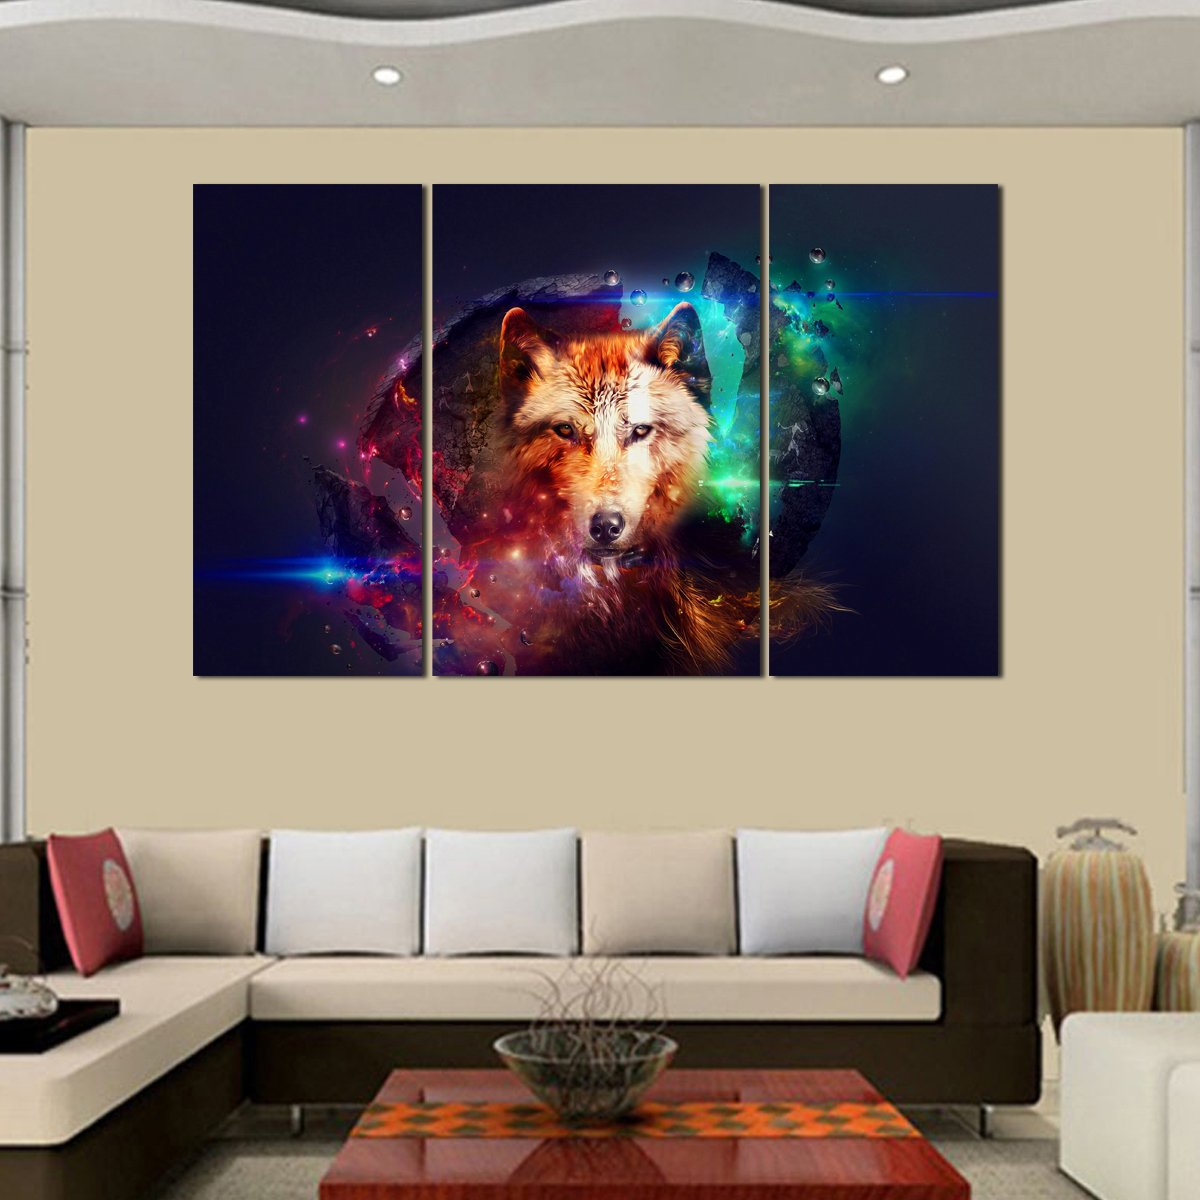 amazon com rain queen canvas print abstract colorful wolf oil amazon com rain queen canvas print abstract colorful wolf oil paintings for home decor no wood frame posters prints